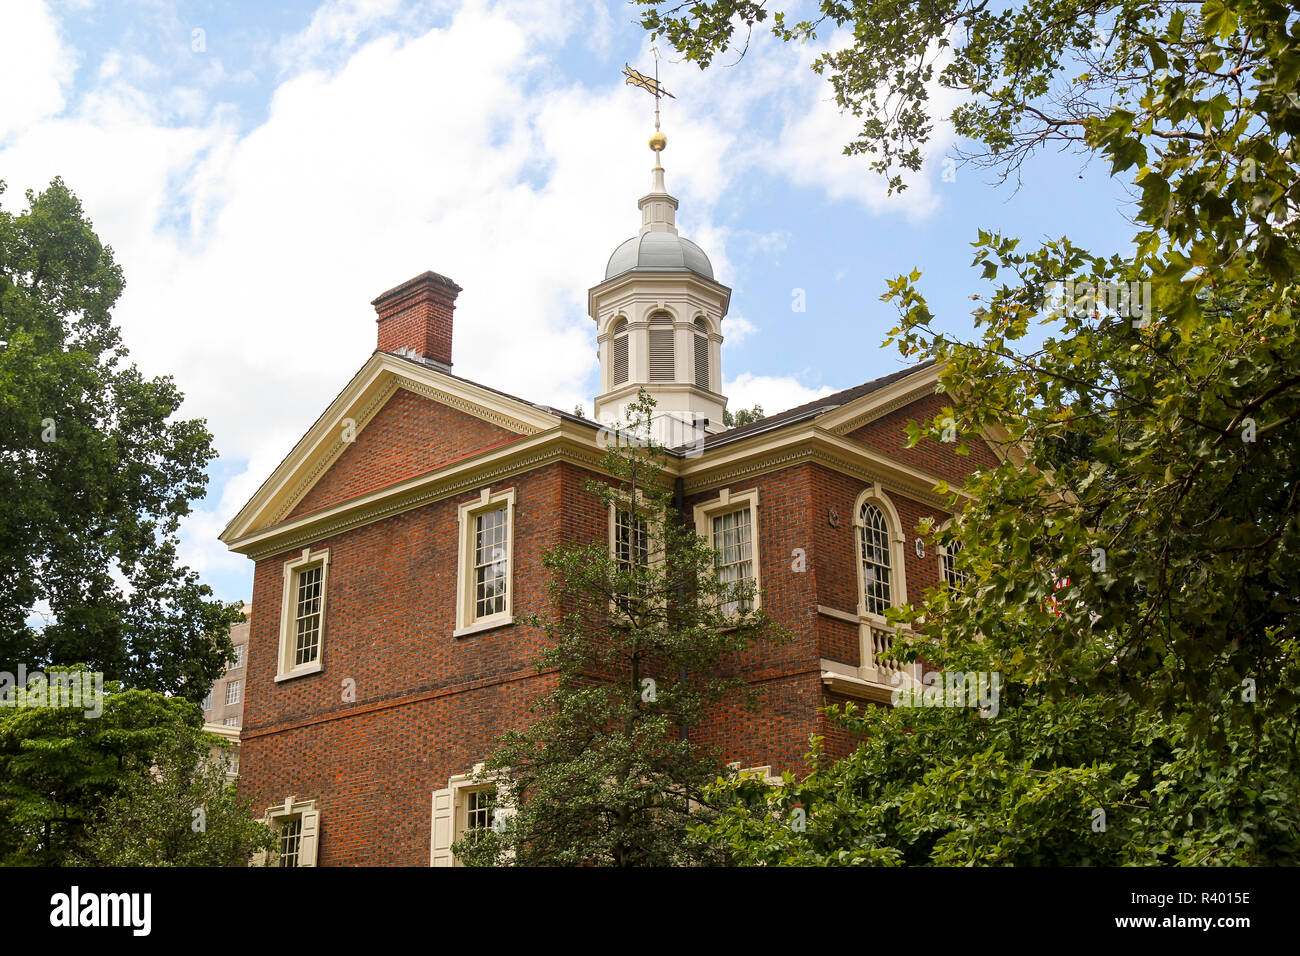 Carpenters' Hall, Independence National Historical Park, Old City, Philadelphia, Pennsylvania, Usa. Stock Photo